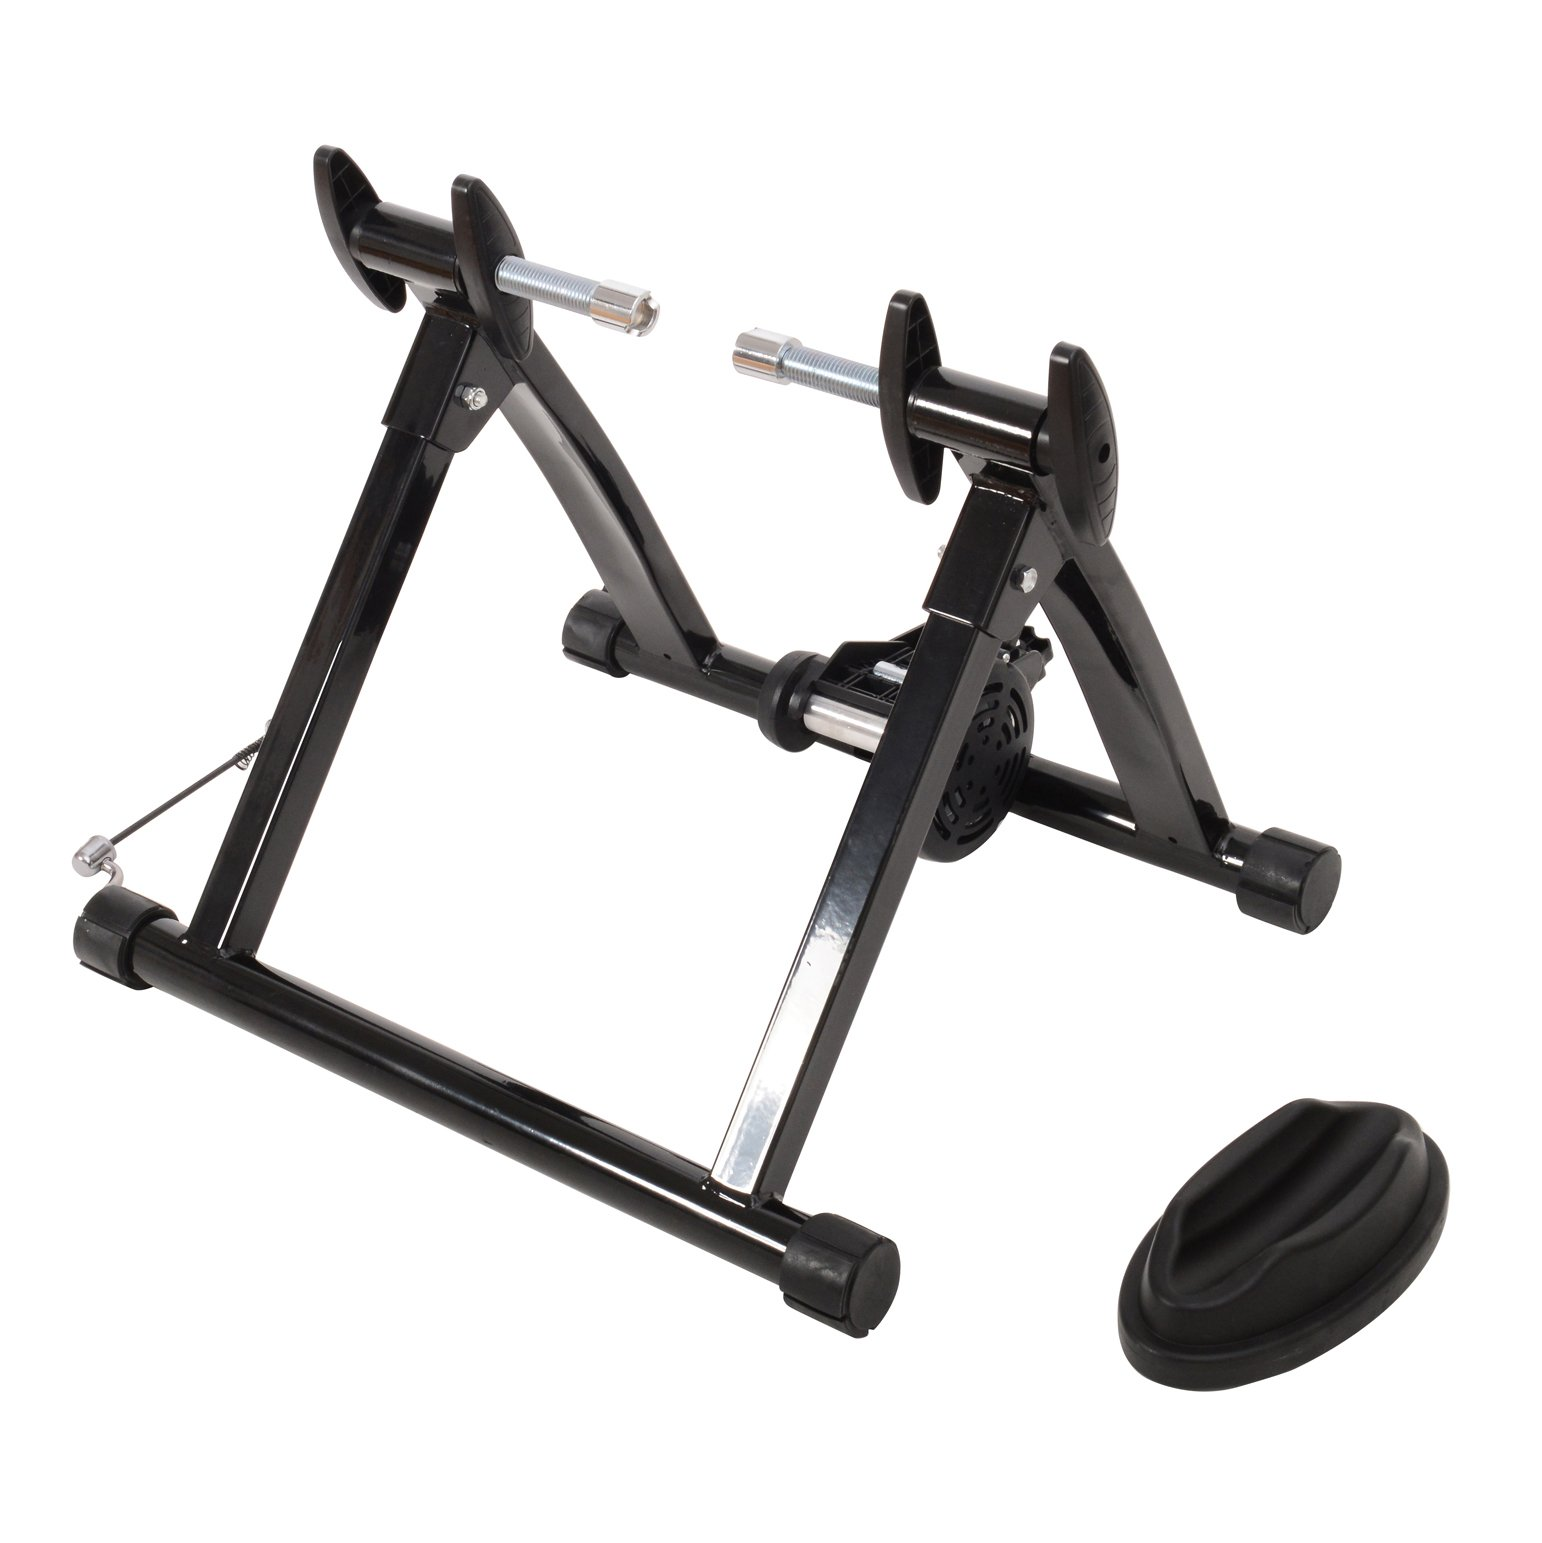 ALEKO MBT01 Portable Indoor Magnetic Bicycle Exercise Trainer Bike Stand with Noise Reduction Wheel Black by ALEKO (Image #2)